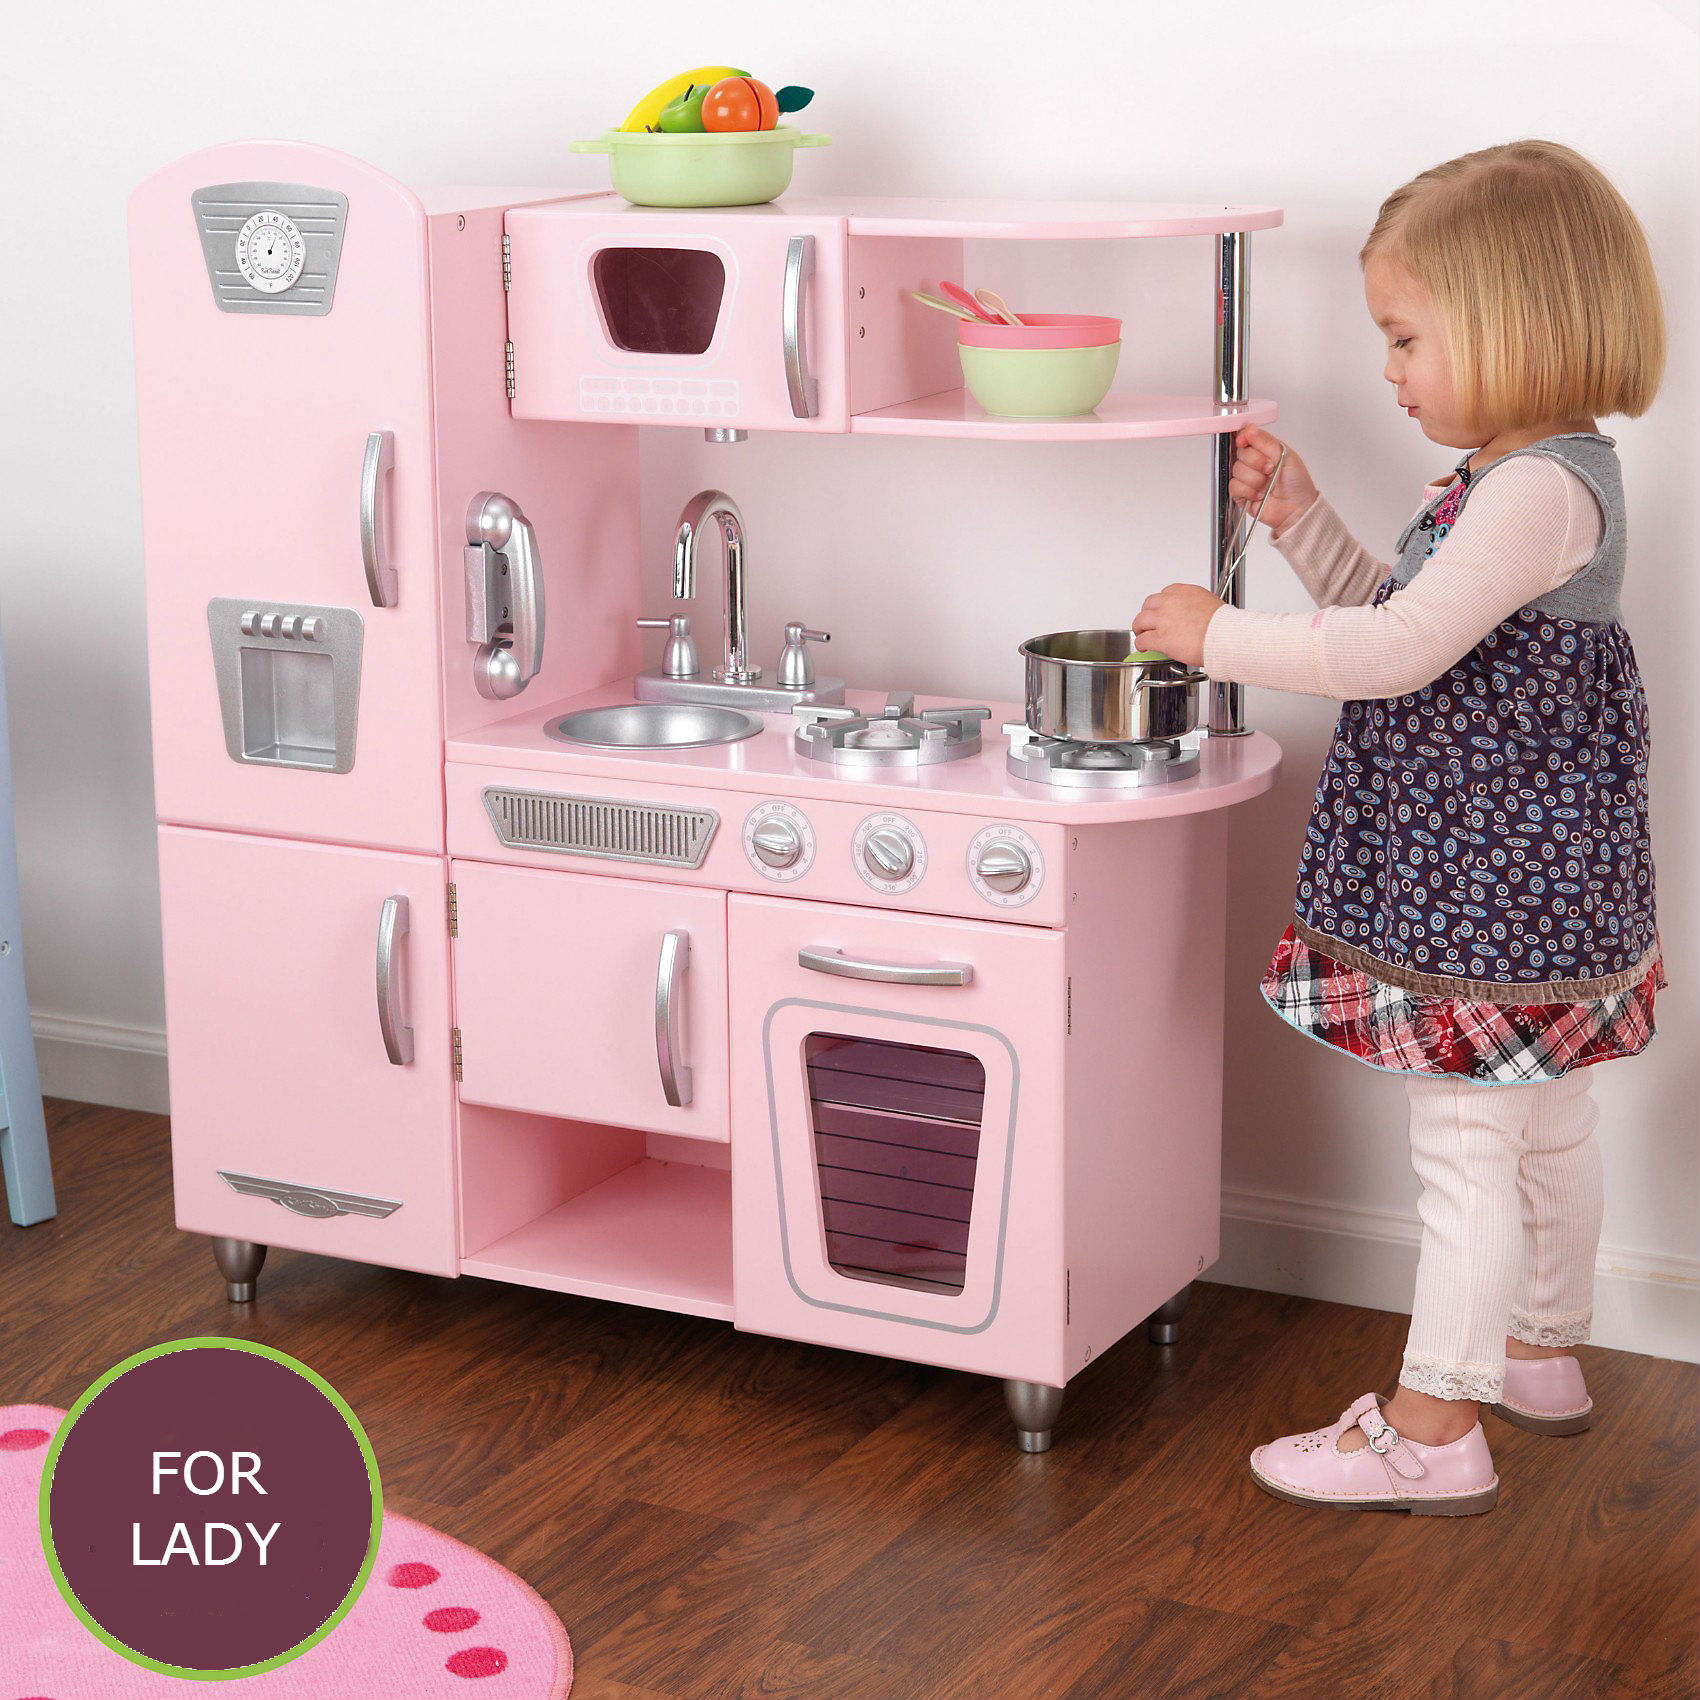 Costco Kids Kitchen Set